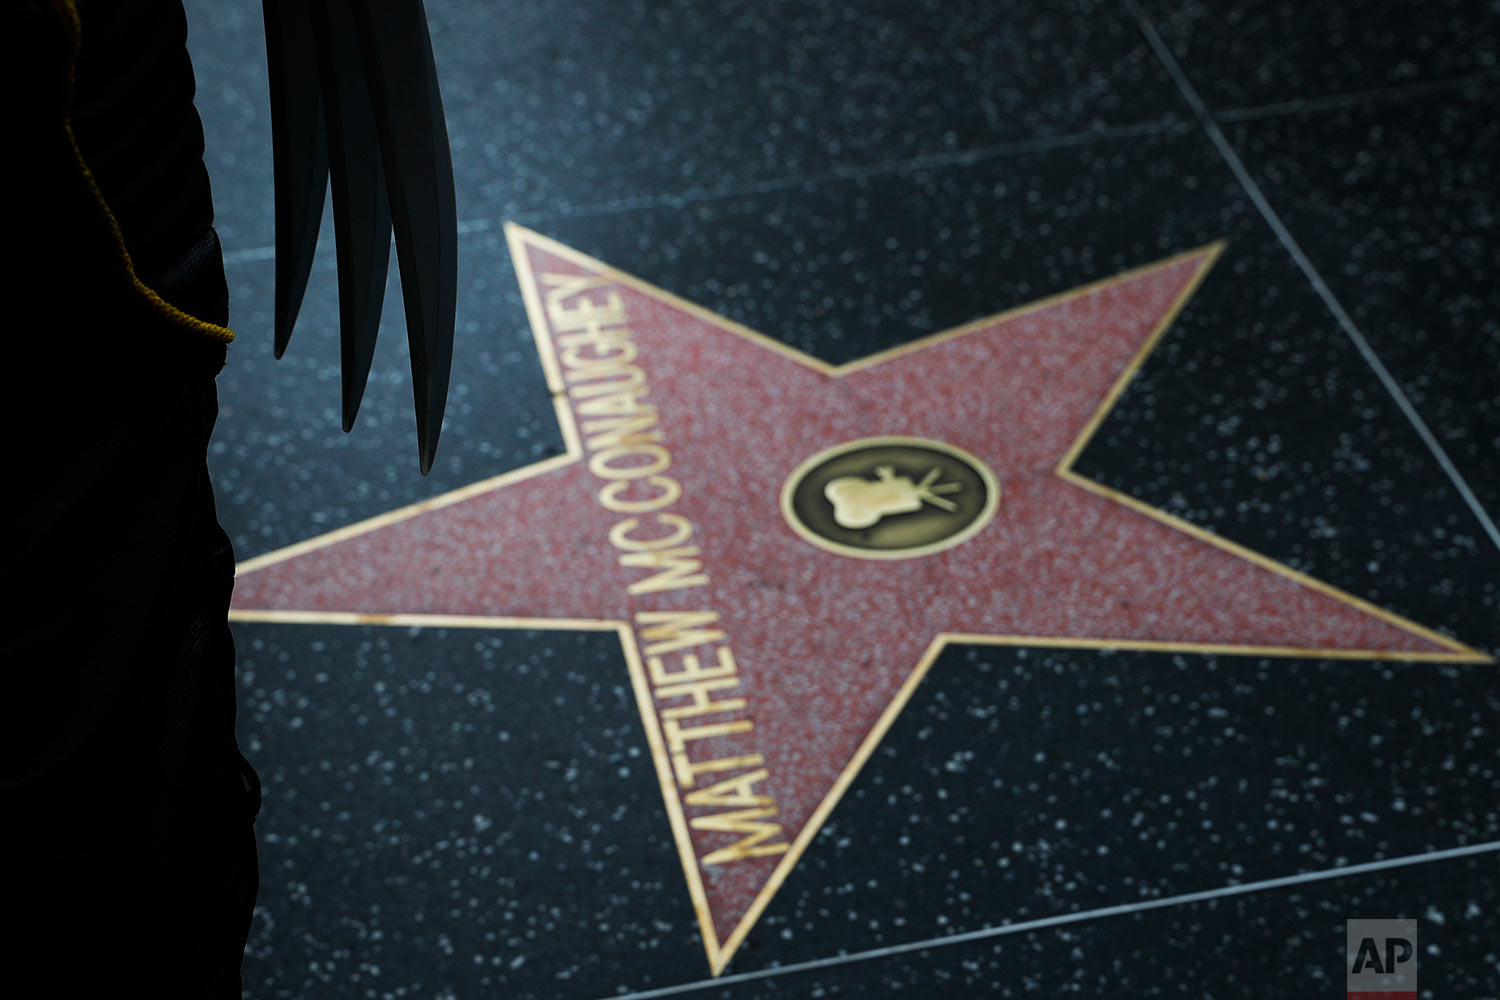 In this Friday, May 26, 2017 photo, Ross Johnson, also known as the Hollywood Wolverine, wears a Marvel Wolverine costume near Matthew McConaughey's star on the Hollywood Walk of Fame, in Los Angeles. Johnson is an actor himself and works as an executive director of a non-profit acting school.  (AP Photo/Jae C. Hong)